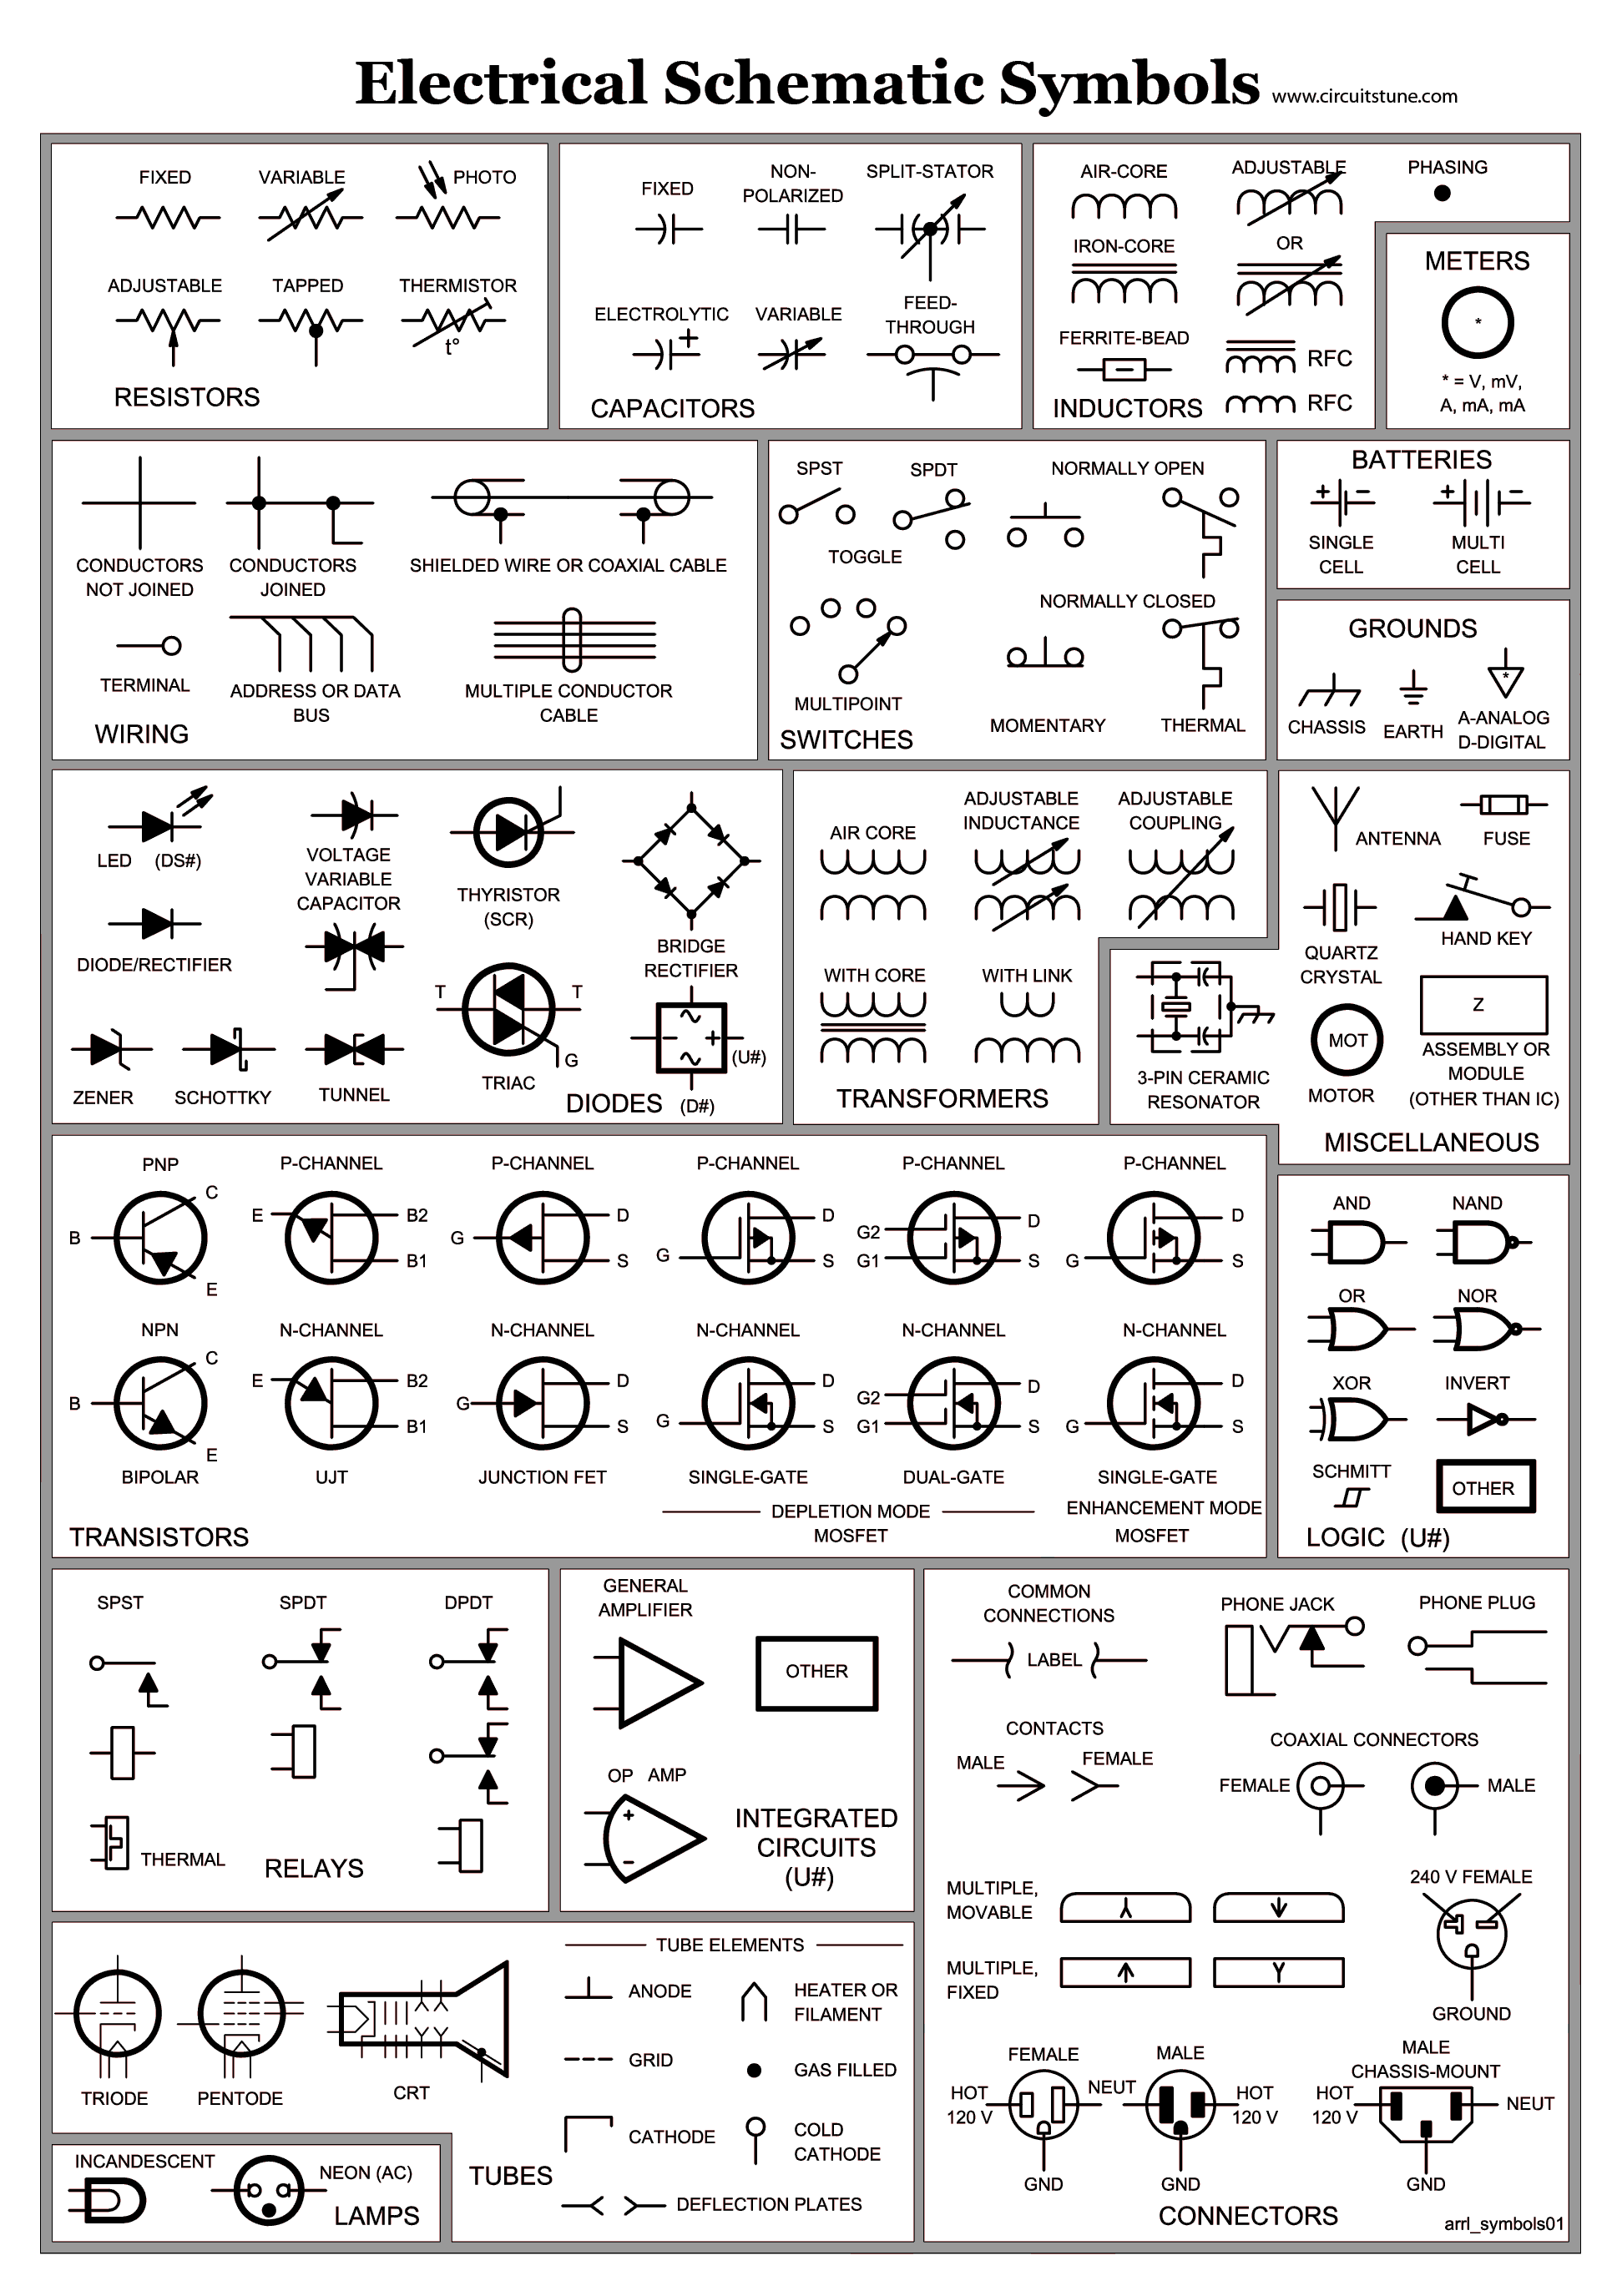 a65d176364692d2ebe913b58a654cfc3 electrical schematic symbols wire diagram symbols automotive wiring schematic symbols at suagrazia.org